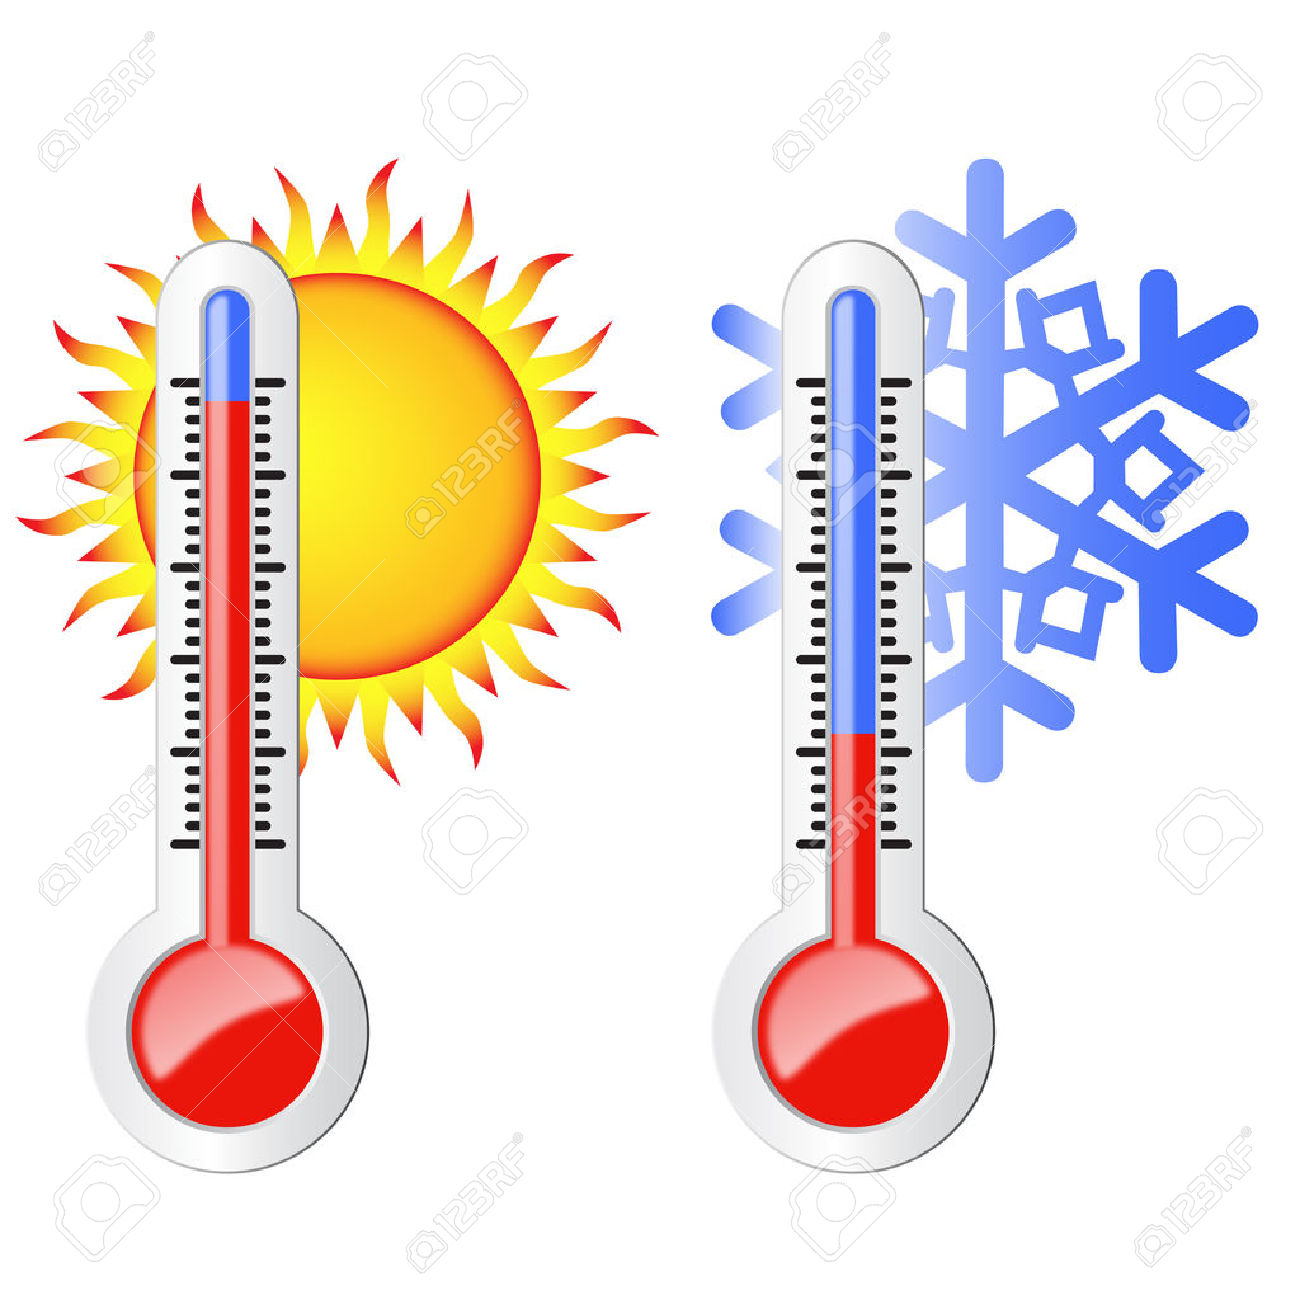 Air temperature clipart - Clipground